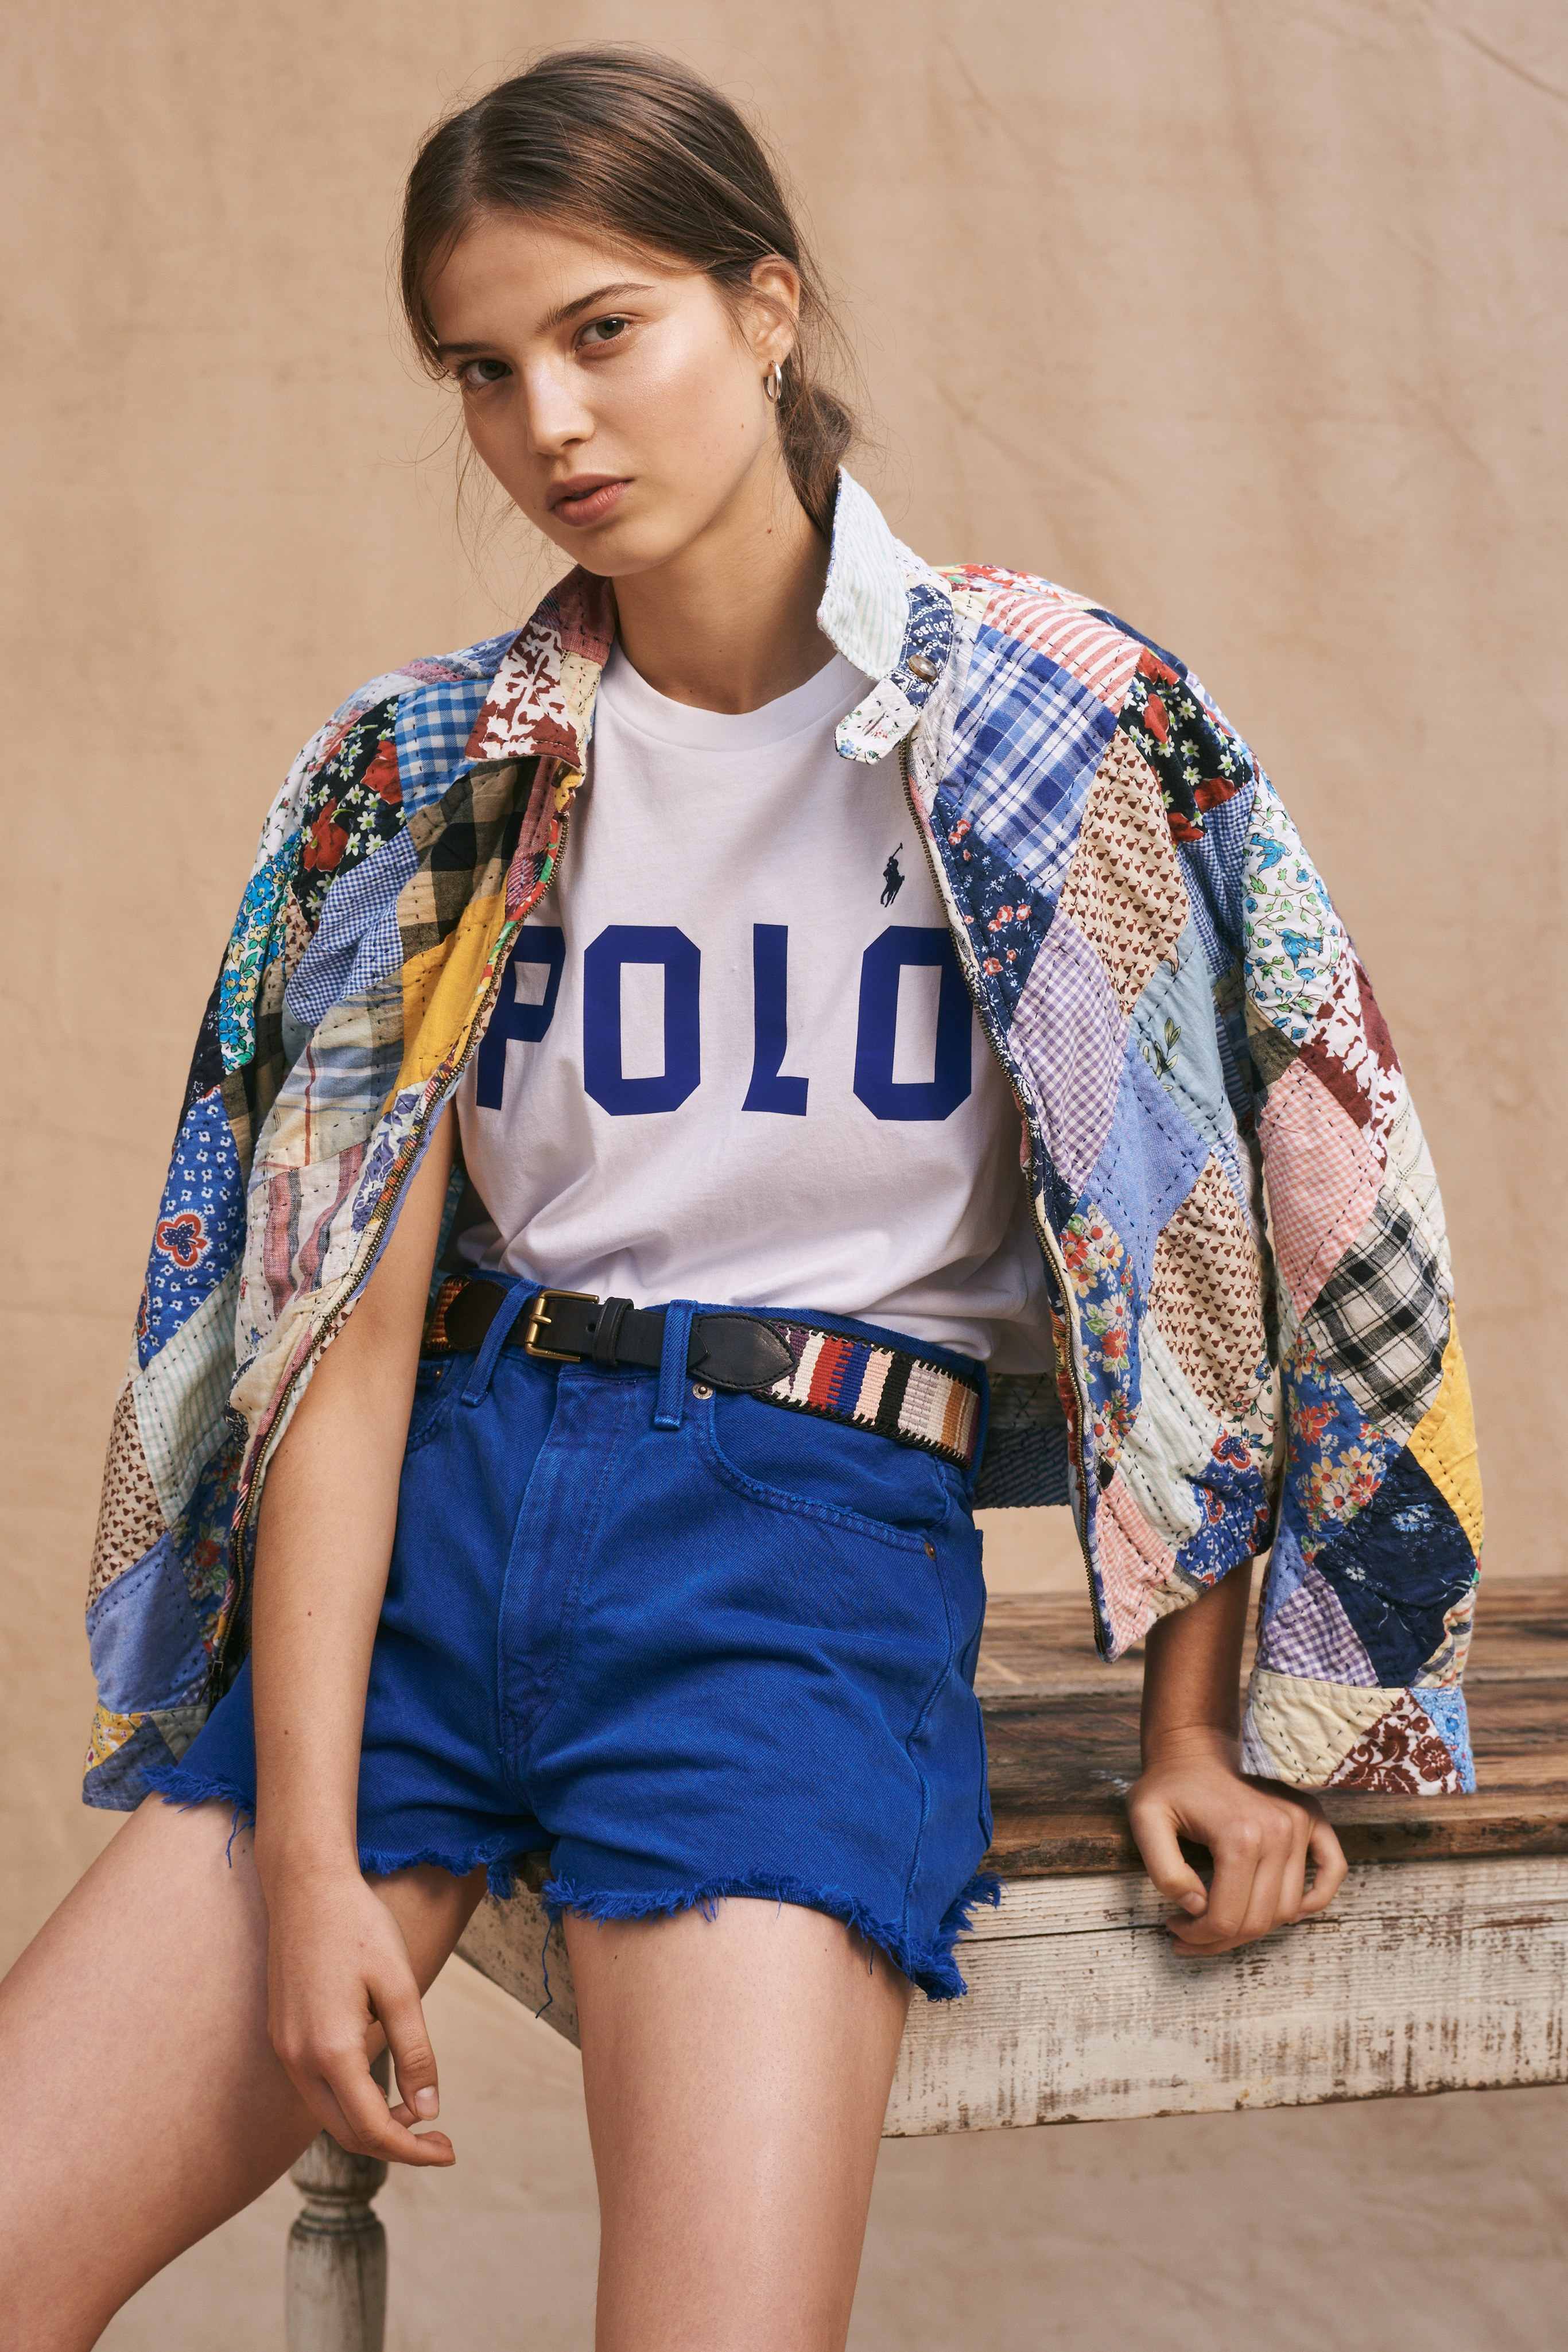 00027-ralph-lauren-polo-spring-2019-read